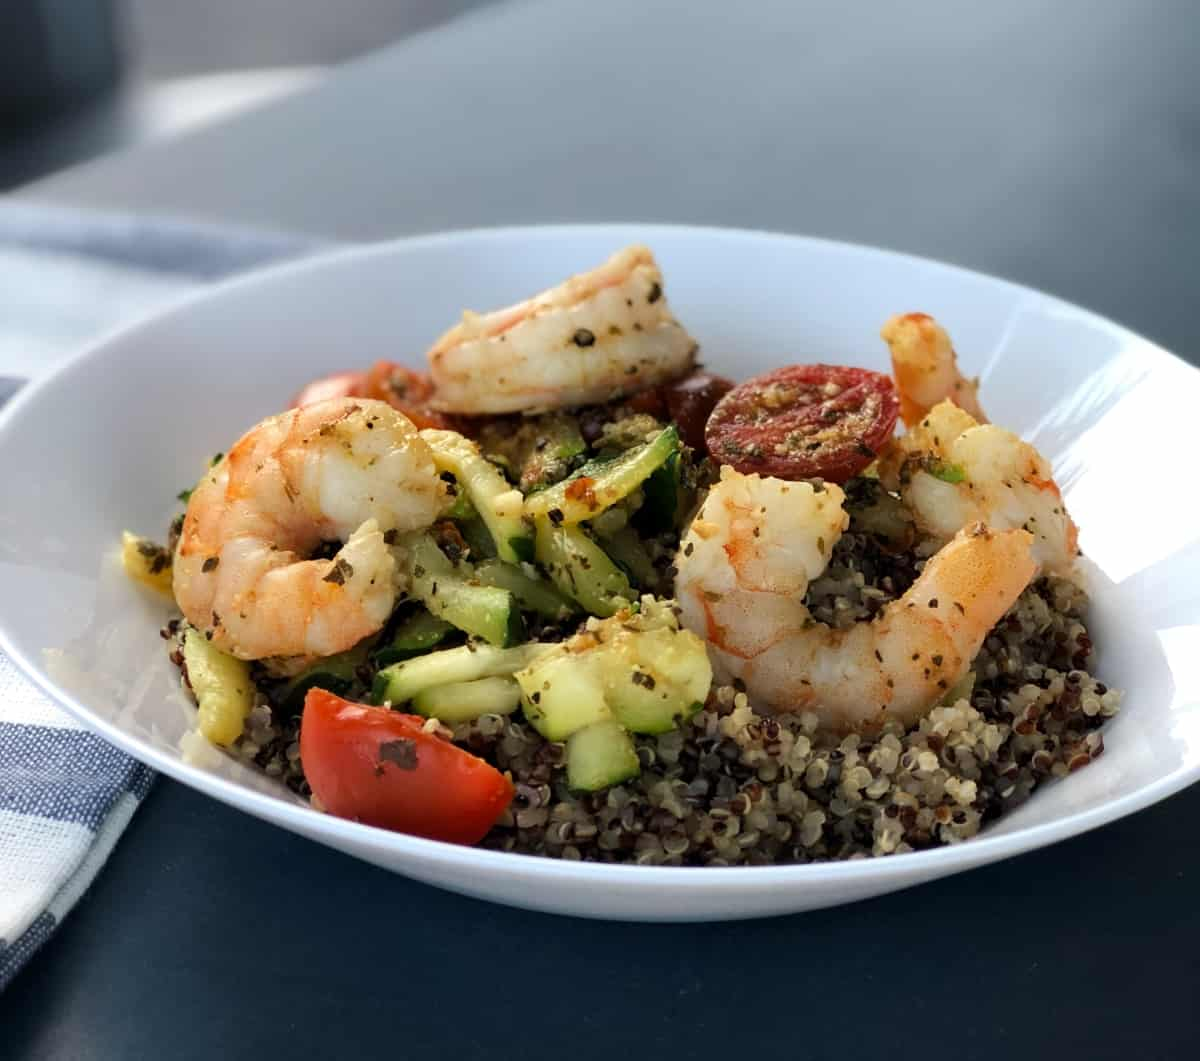 Spicy shrimp with zucchini and tomatoes over quinoa in white bowl.